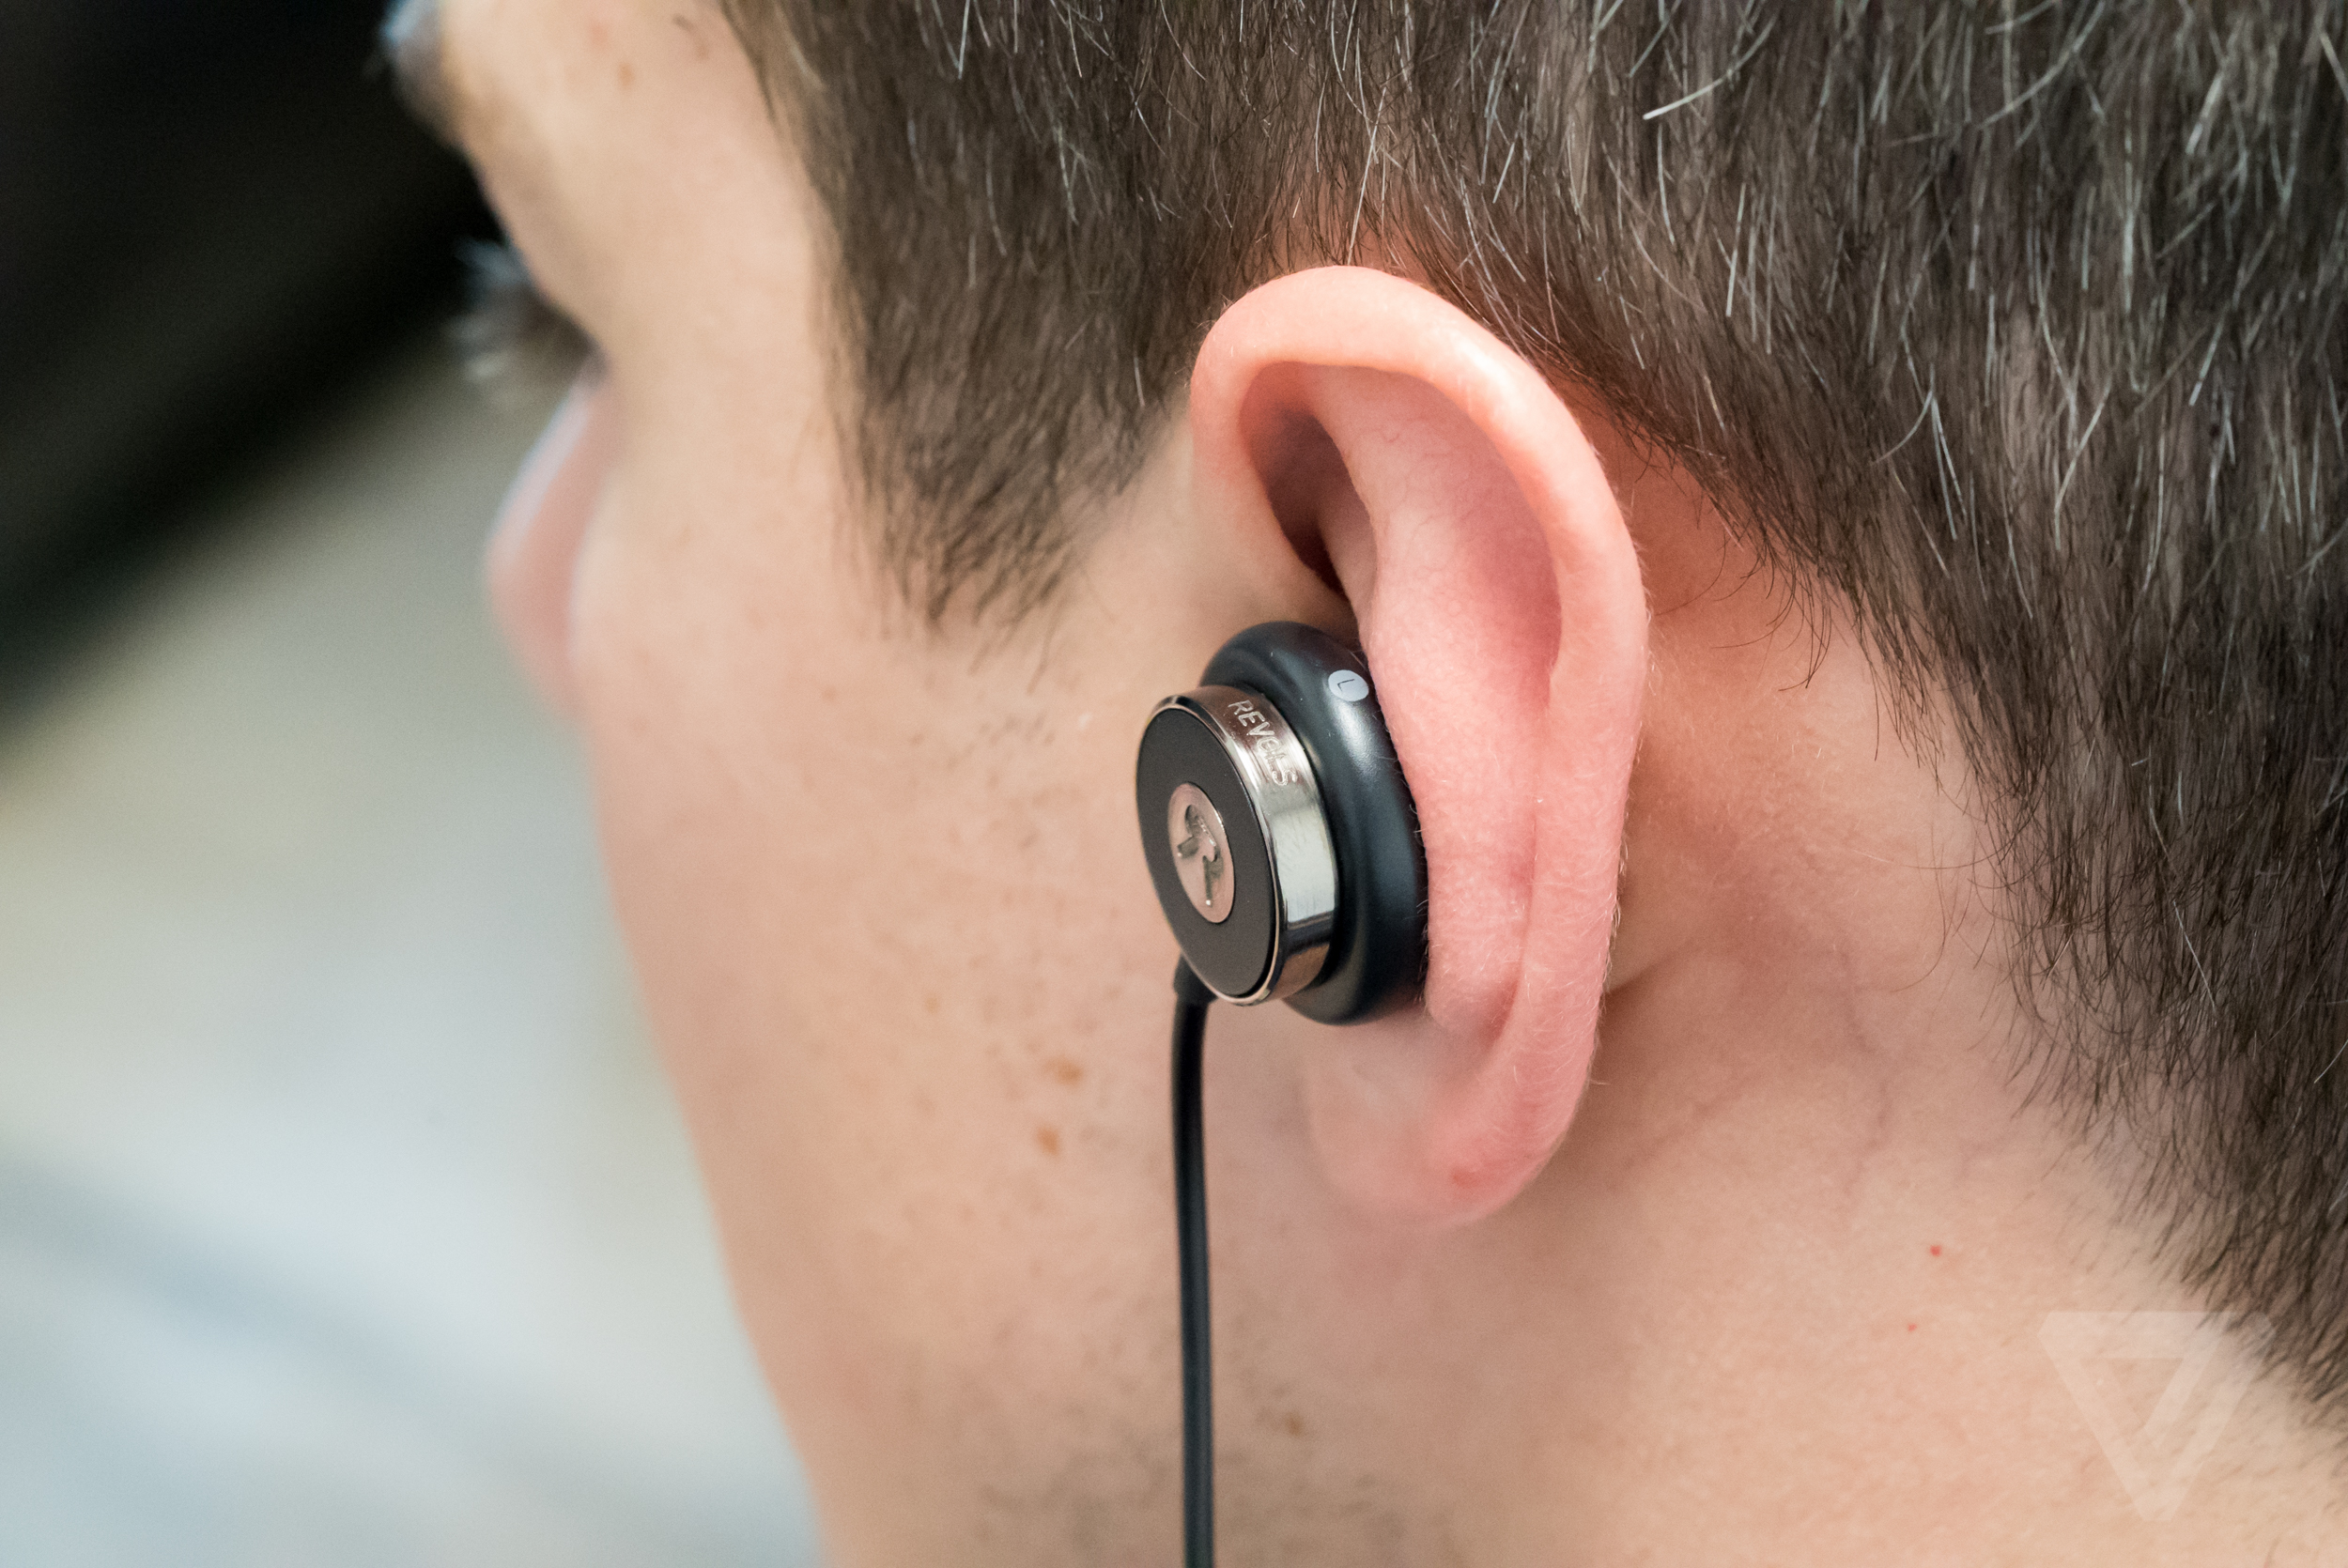 These earbuds custom-fit to your ears in 60 seconds